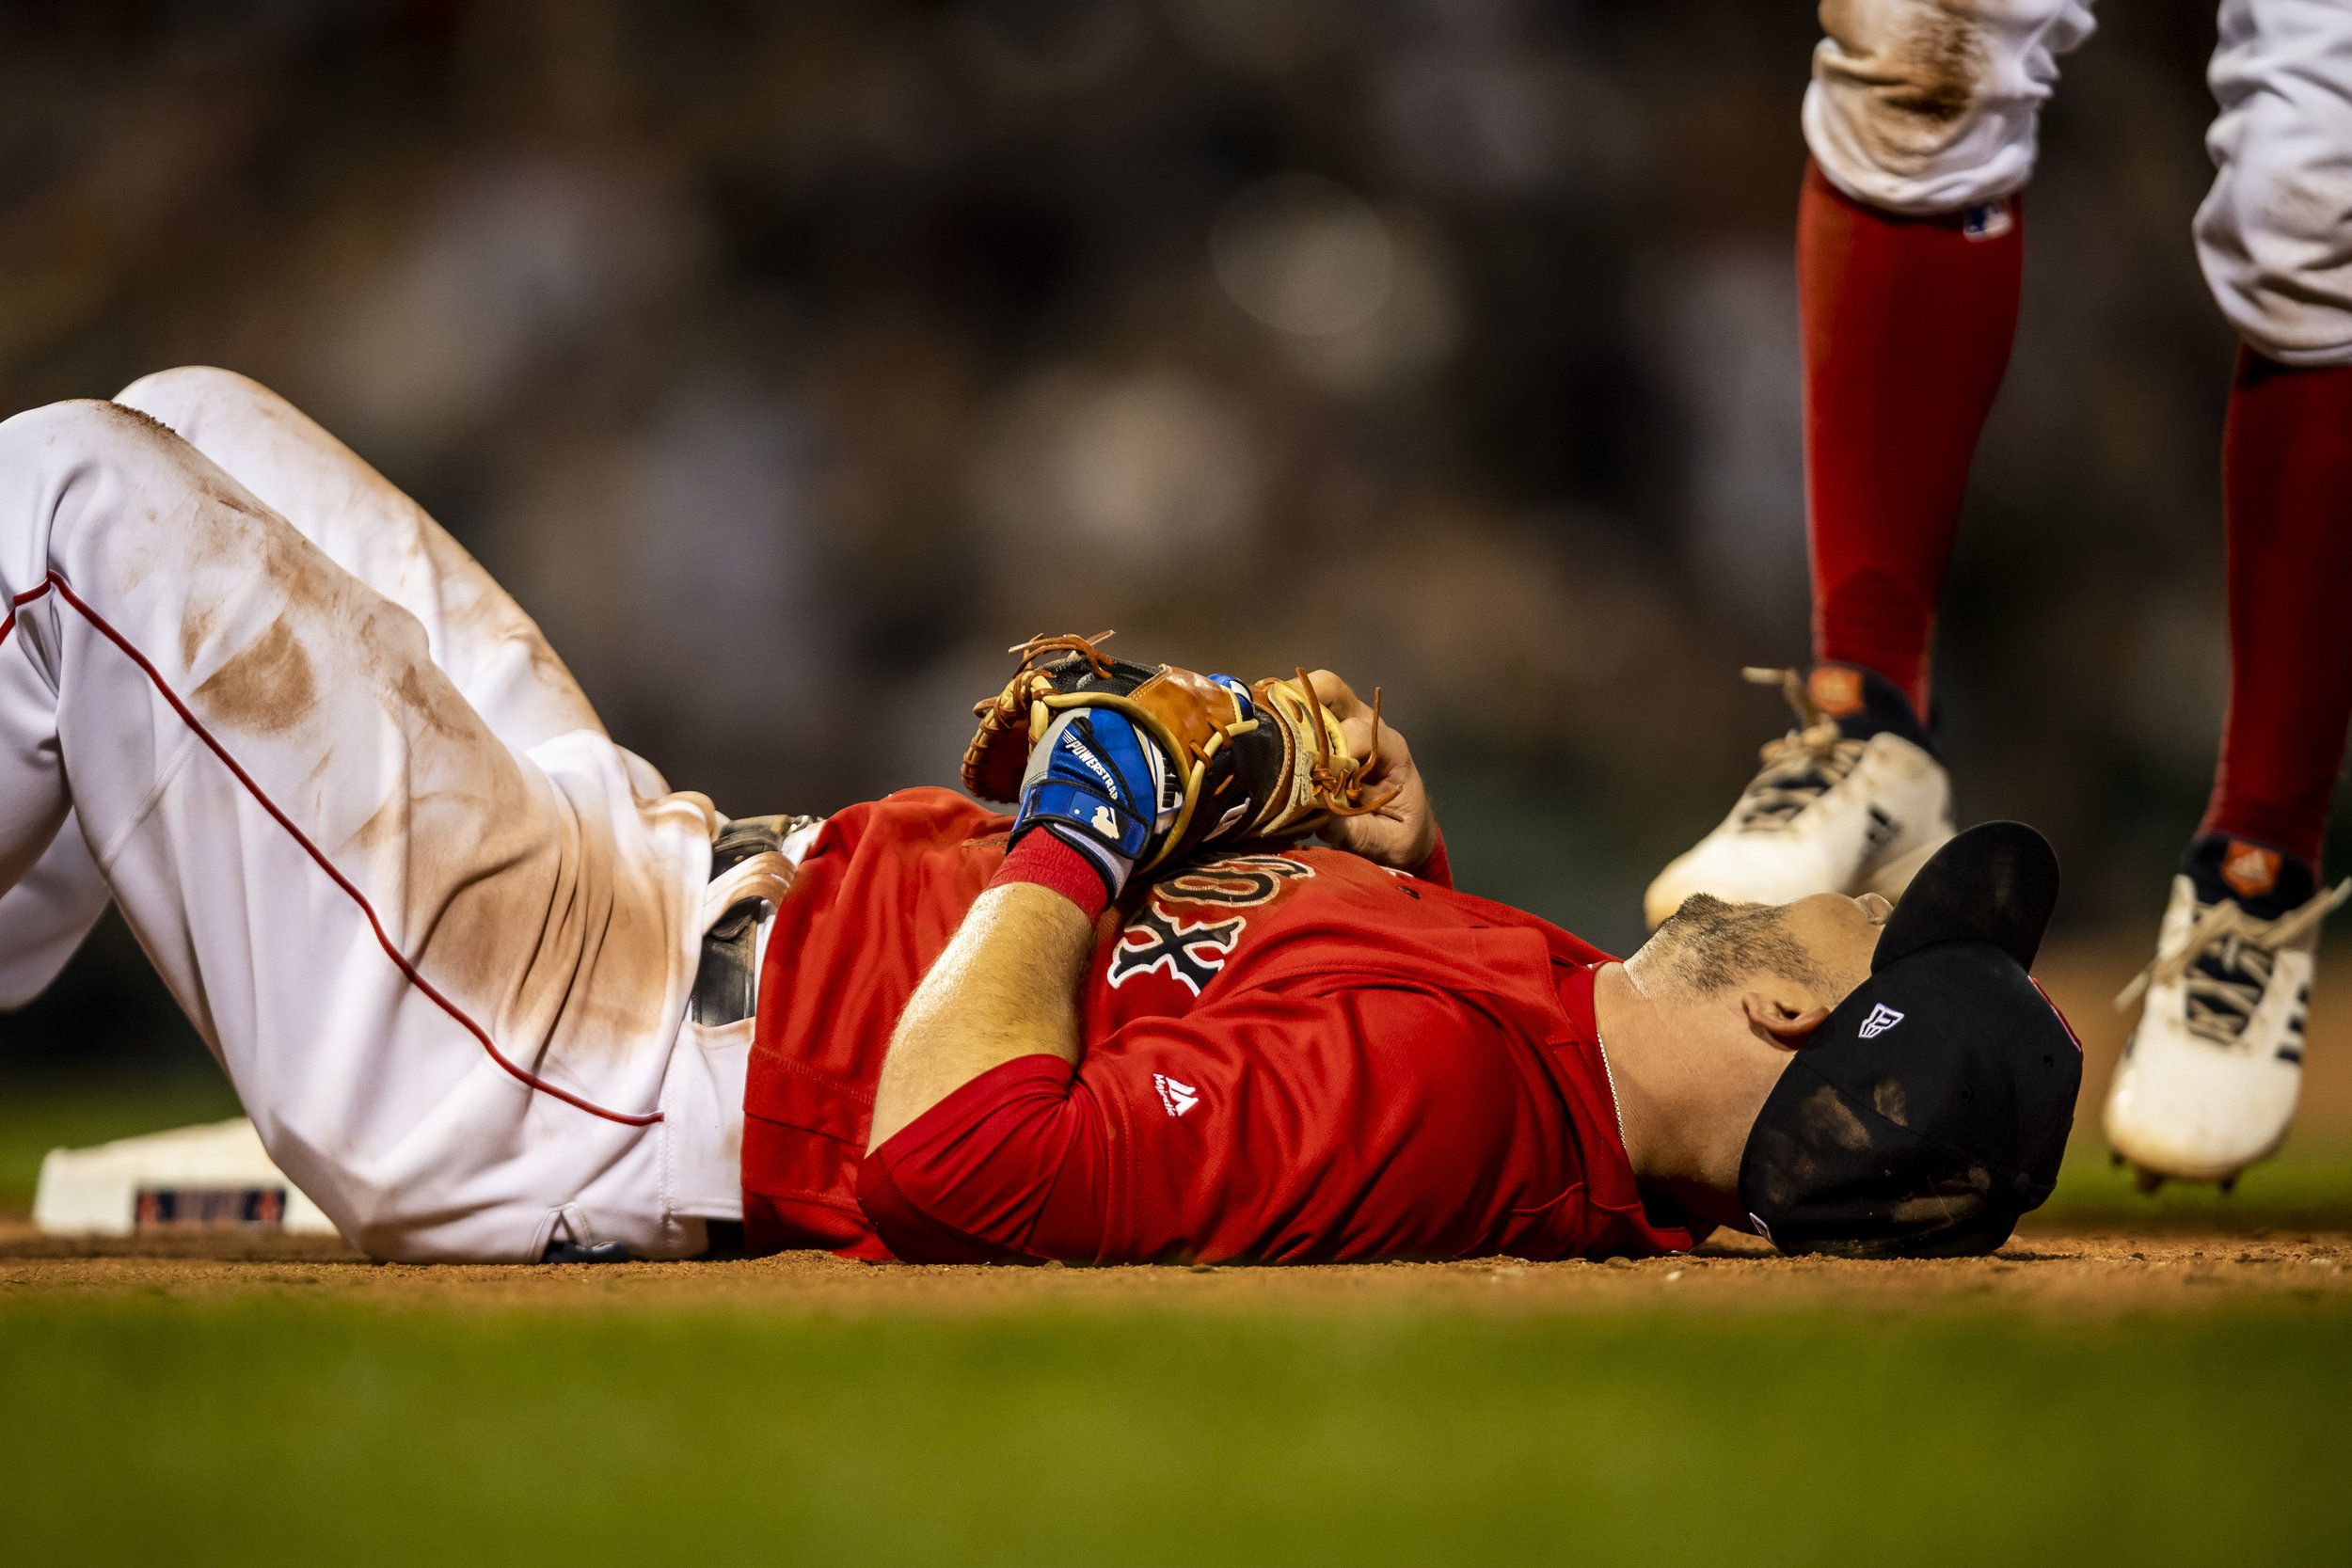 July 26, 2018, Boston, MA: Boston Red Sox infielder Steve Pearce lays on his back after making a play at first base as the Boston Red Sox face the Minnesota Twins at Fenway Park in Boston, Massachusetts on Friday, July 27, 2018. (Photo by Matthew Thomas/Boston Red Sox)